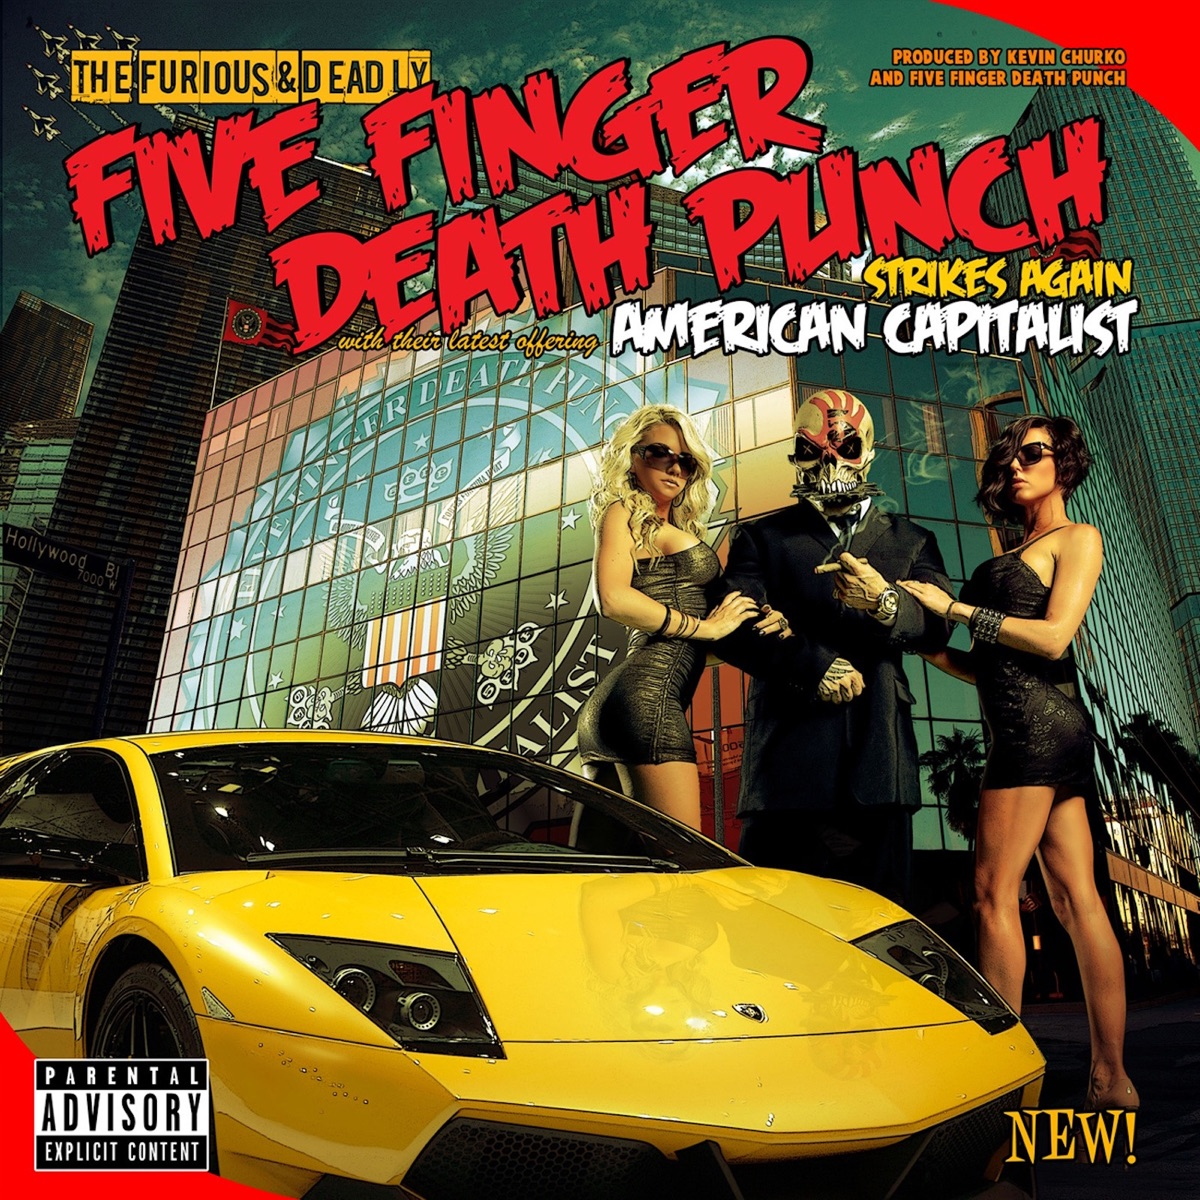 American Capitalist Deluxe Edition Five Finger Death Punch CD cover